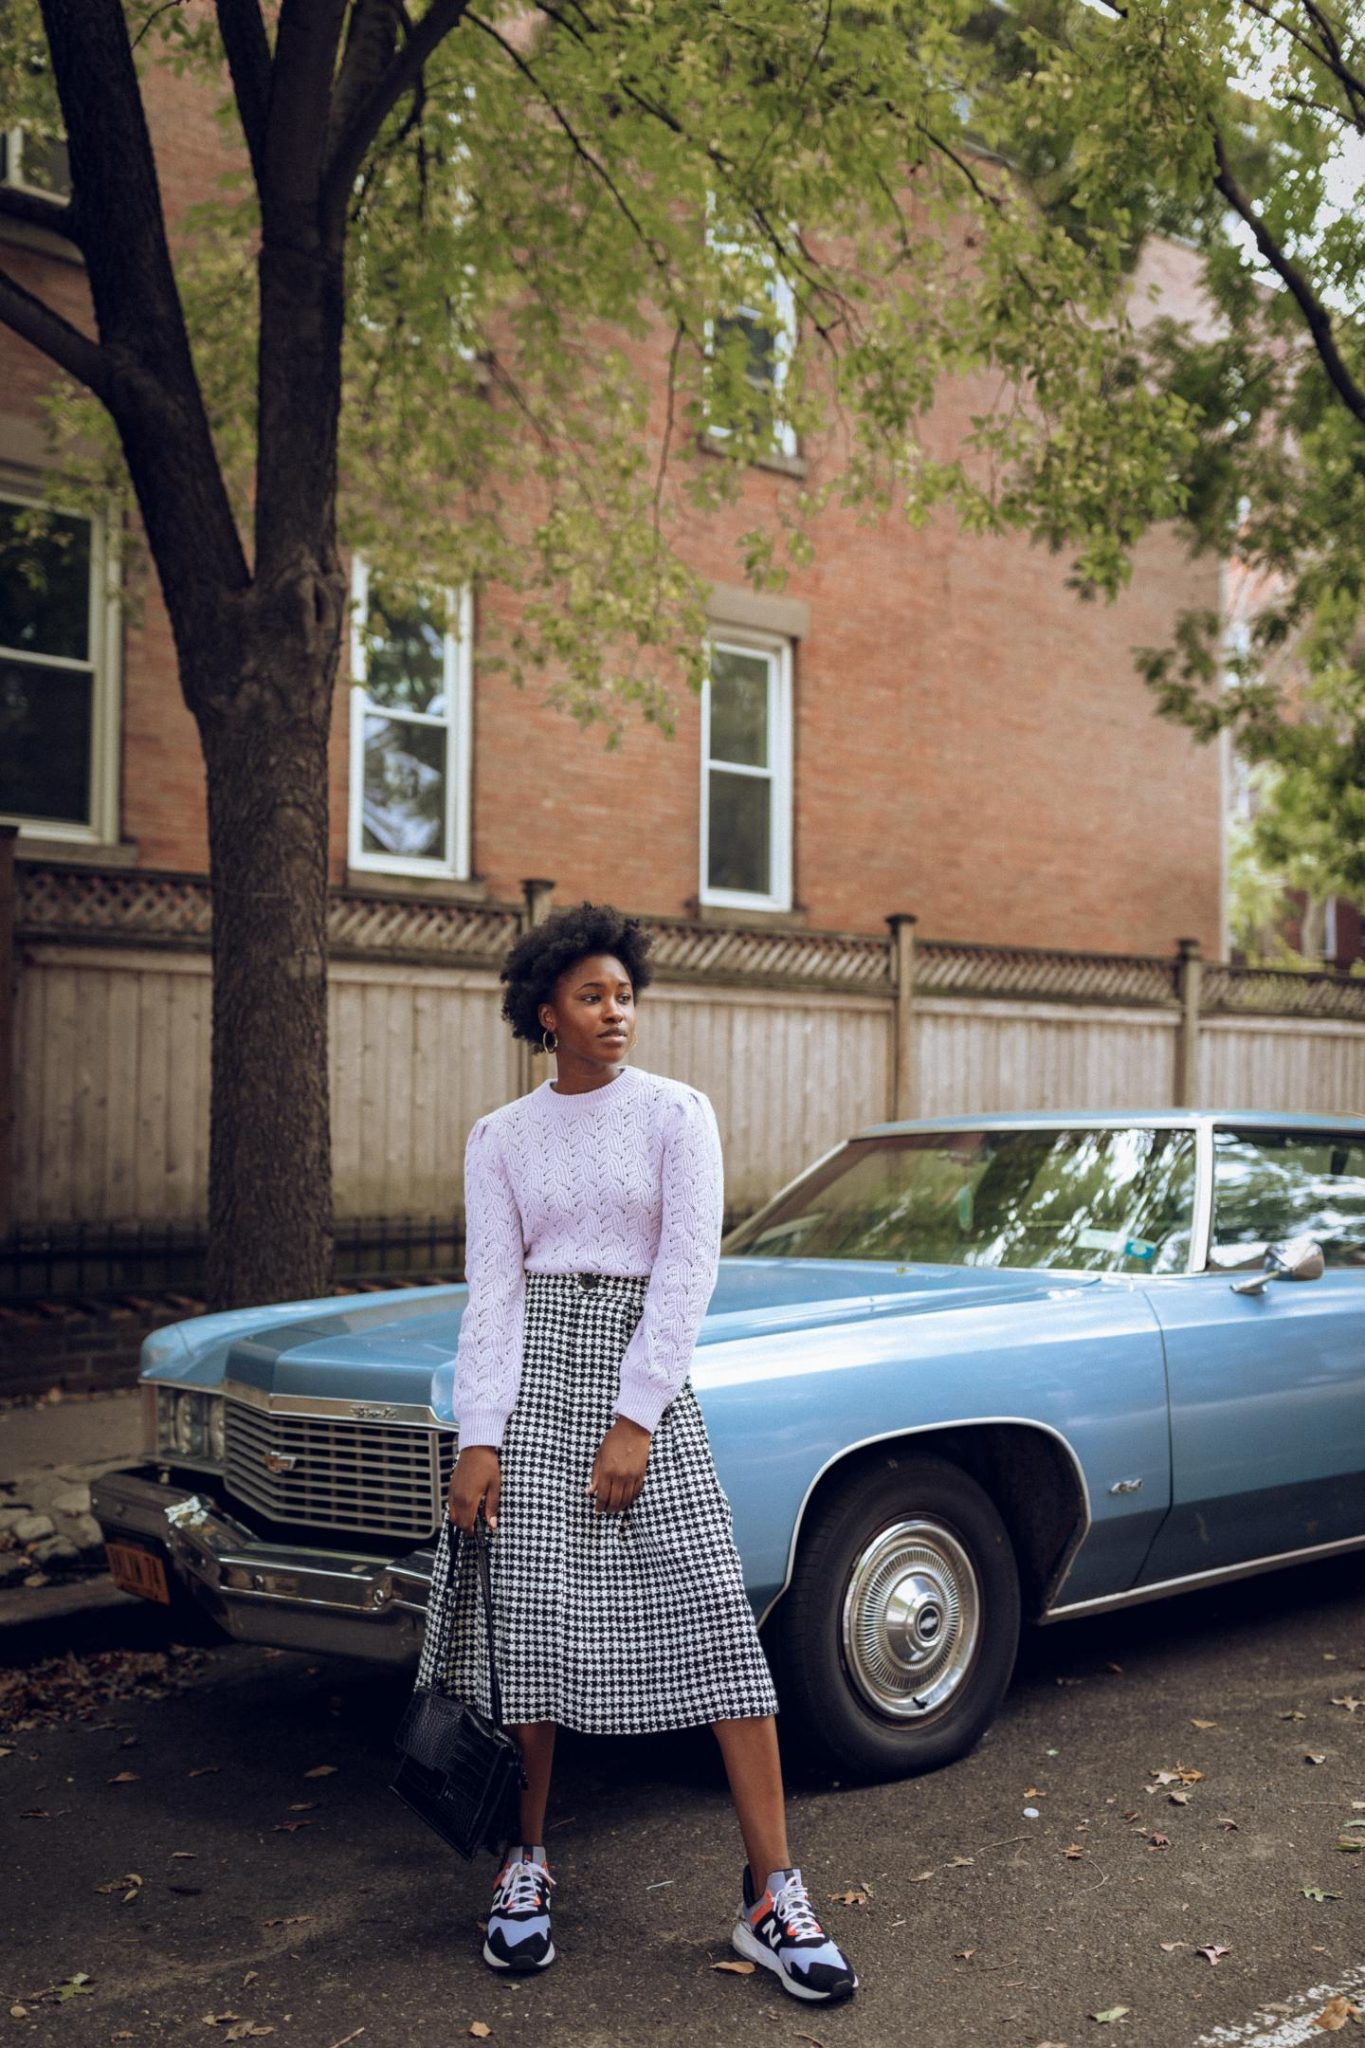 Black Women standing in front of a vintage car